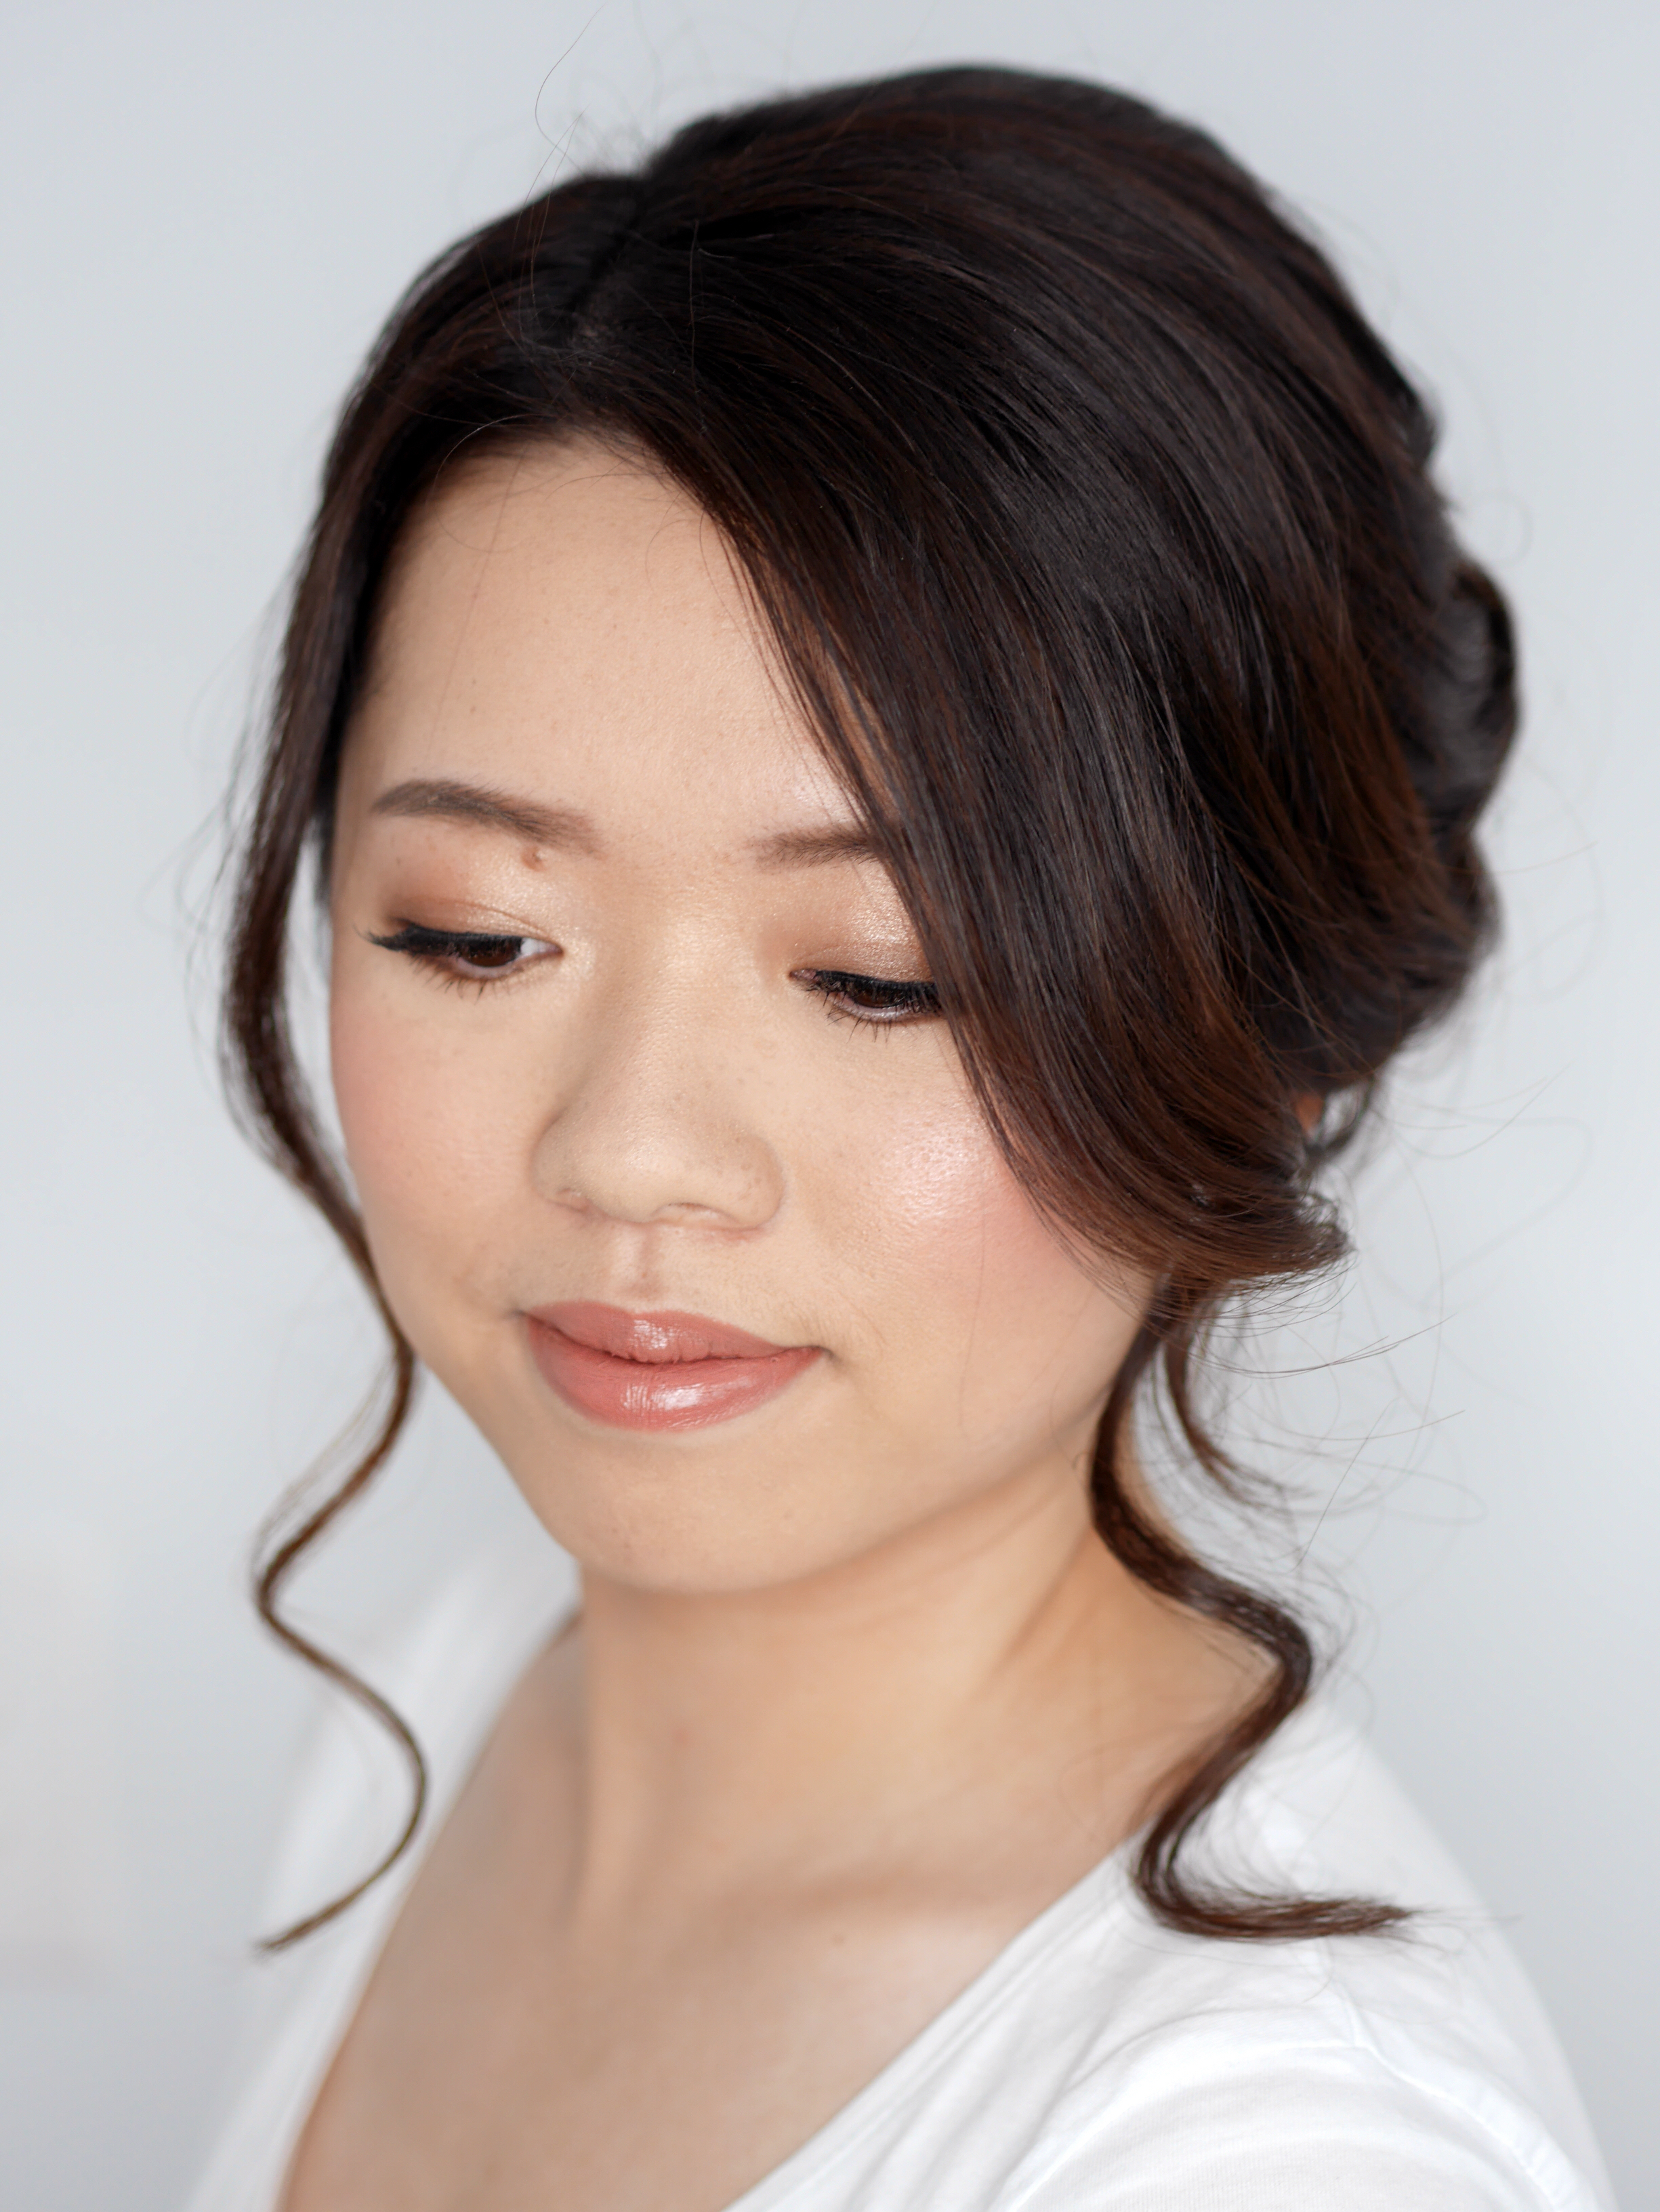 Zoe Zhu Hair and Makeup